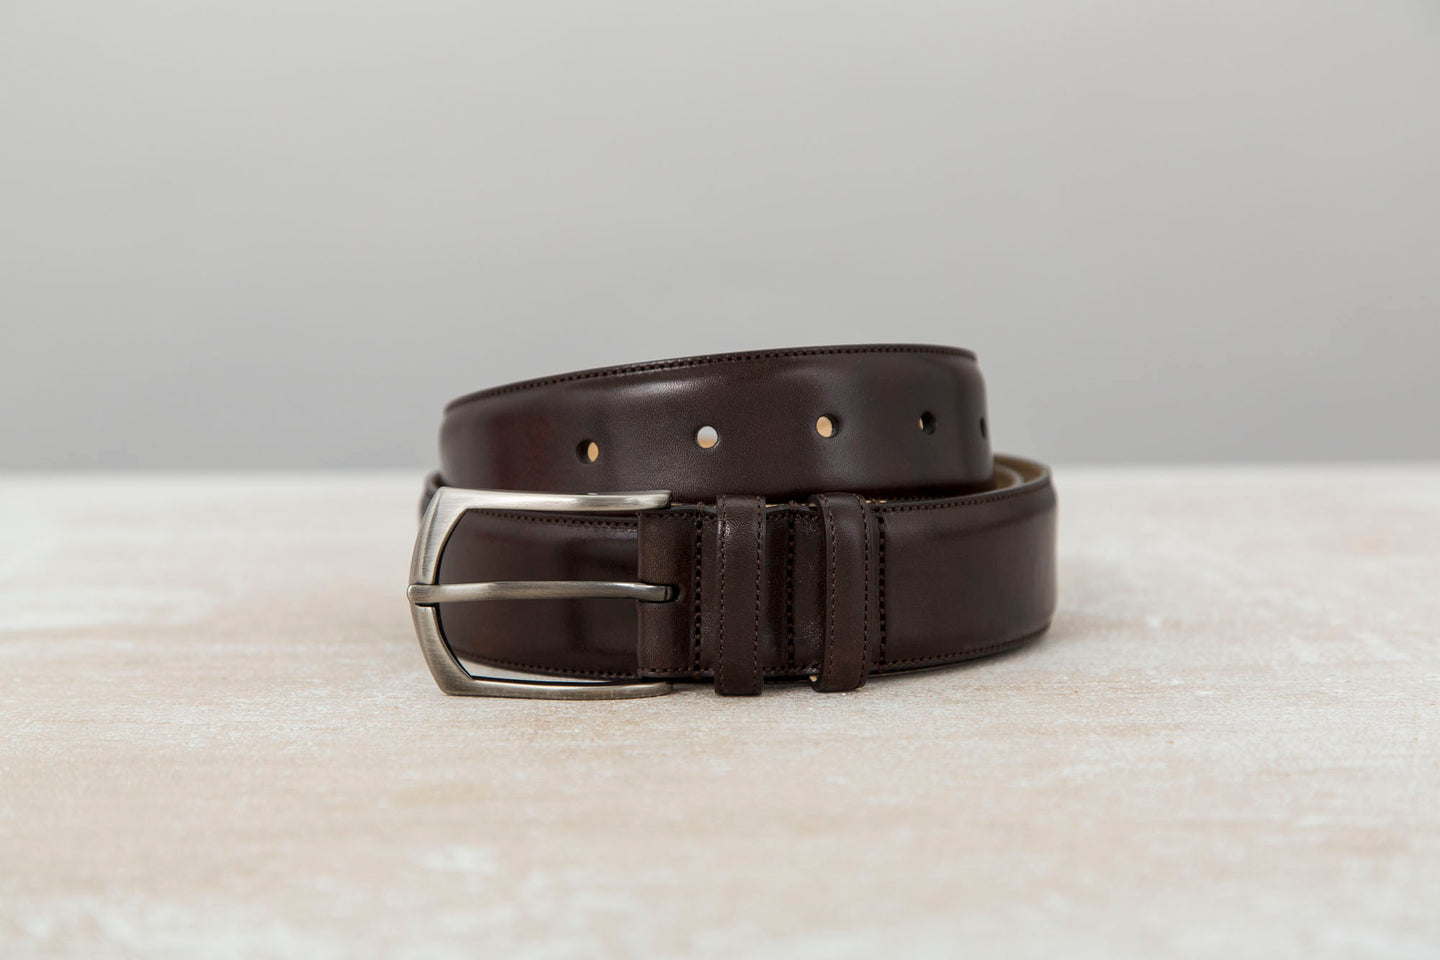 Leather Belt - Dark Brown Museum Calf - The Shoe Snob Shop